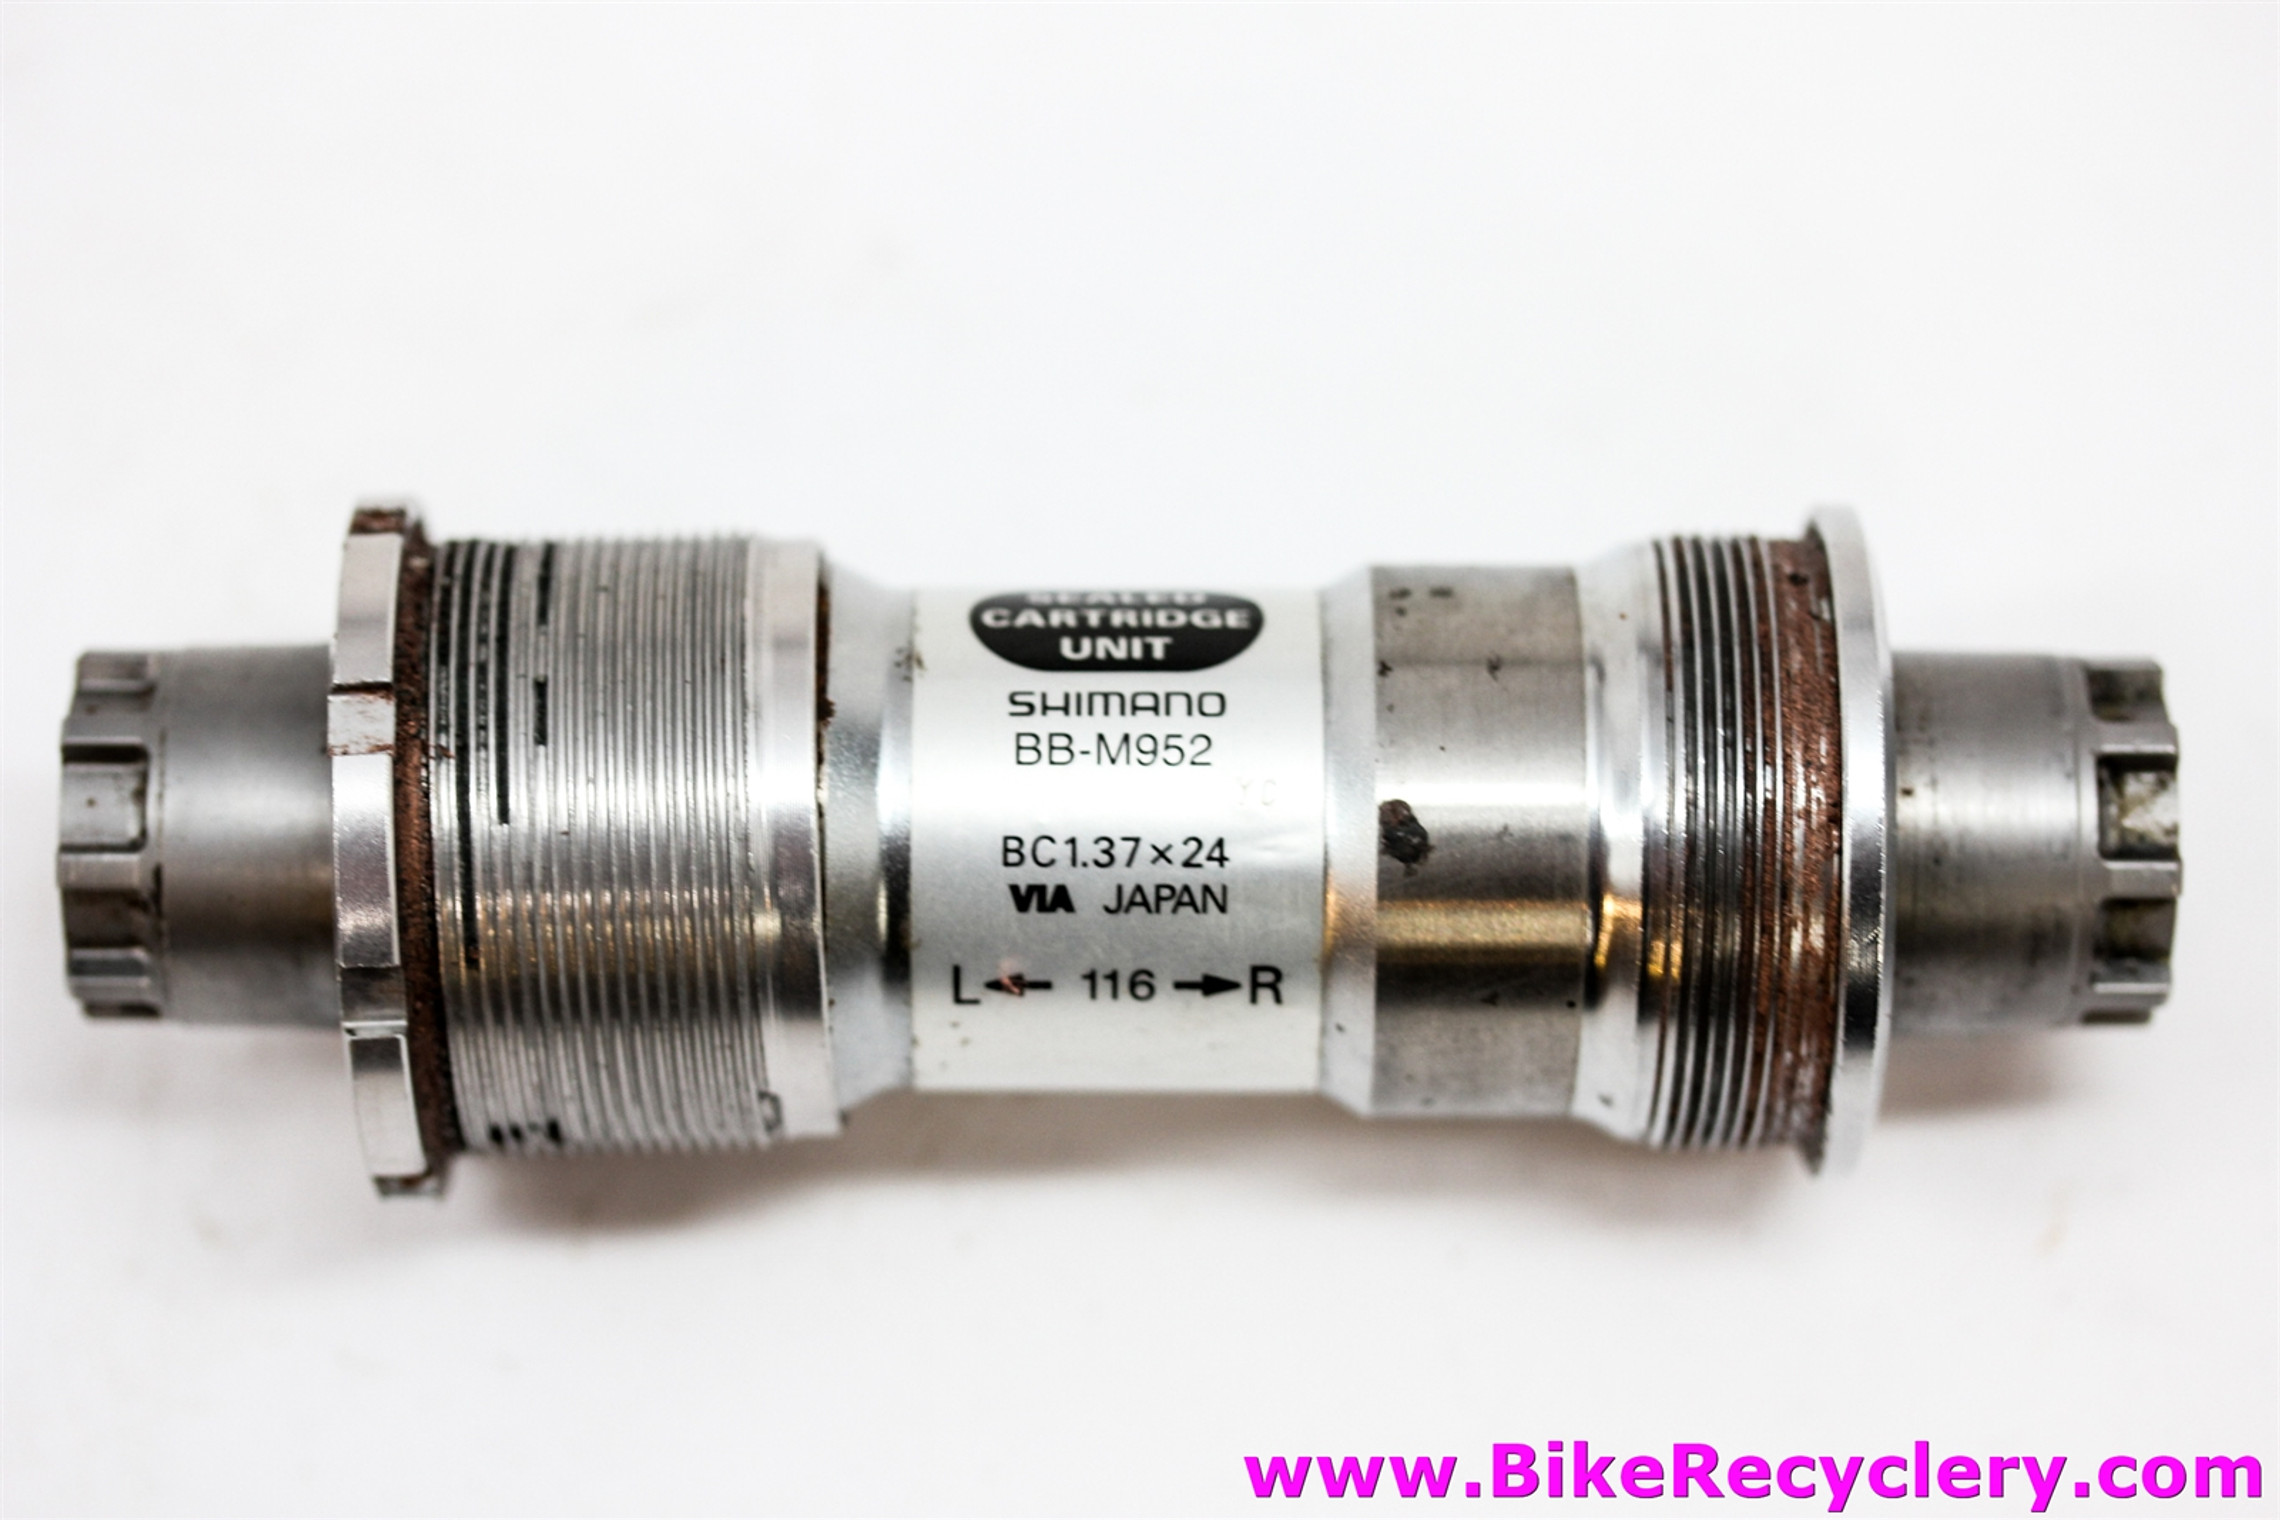 Shimano XTR BB-M952 Bottom Bracket: Octalink V1 - 116mm (MINT)